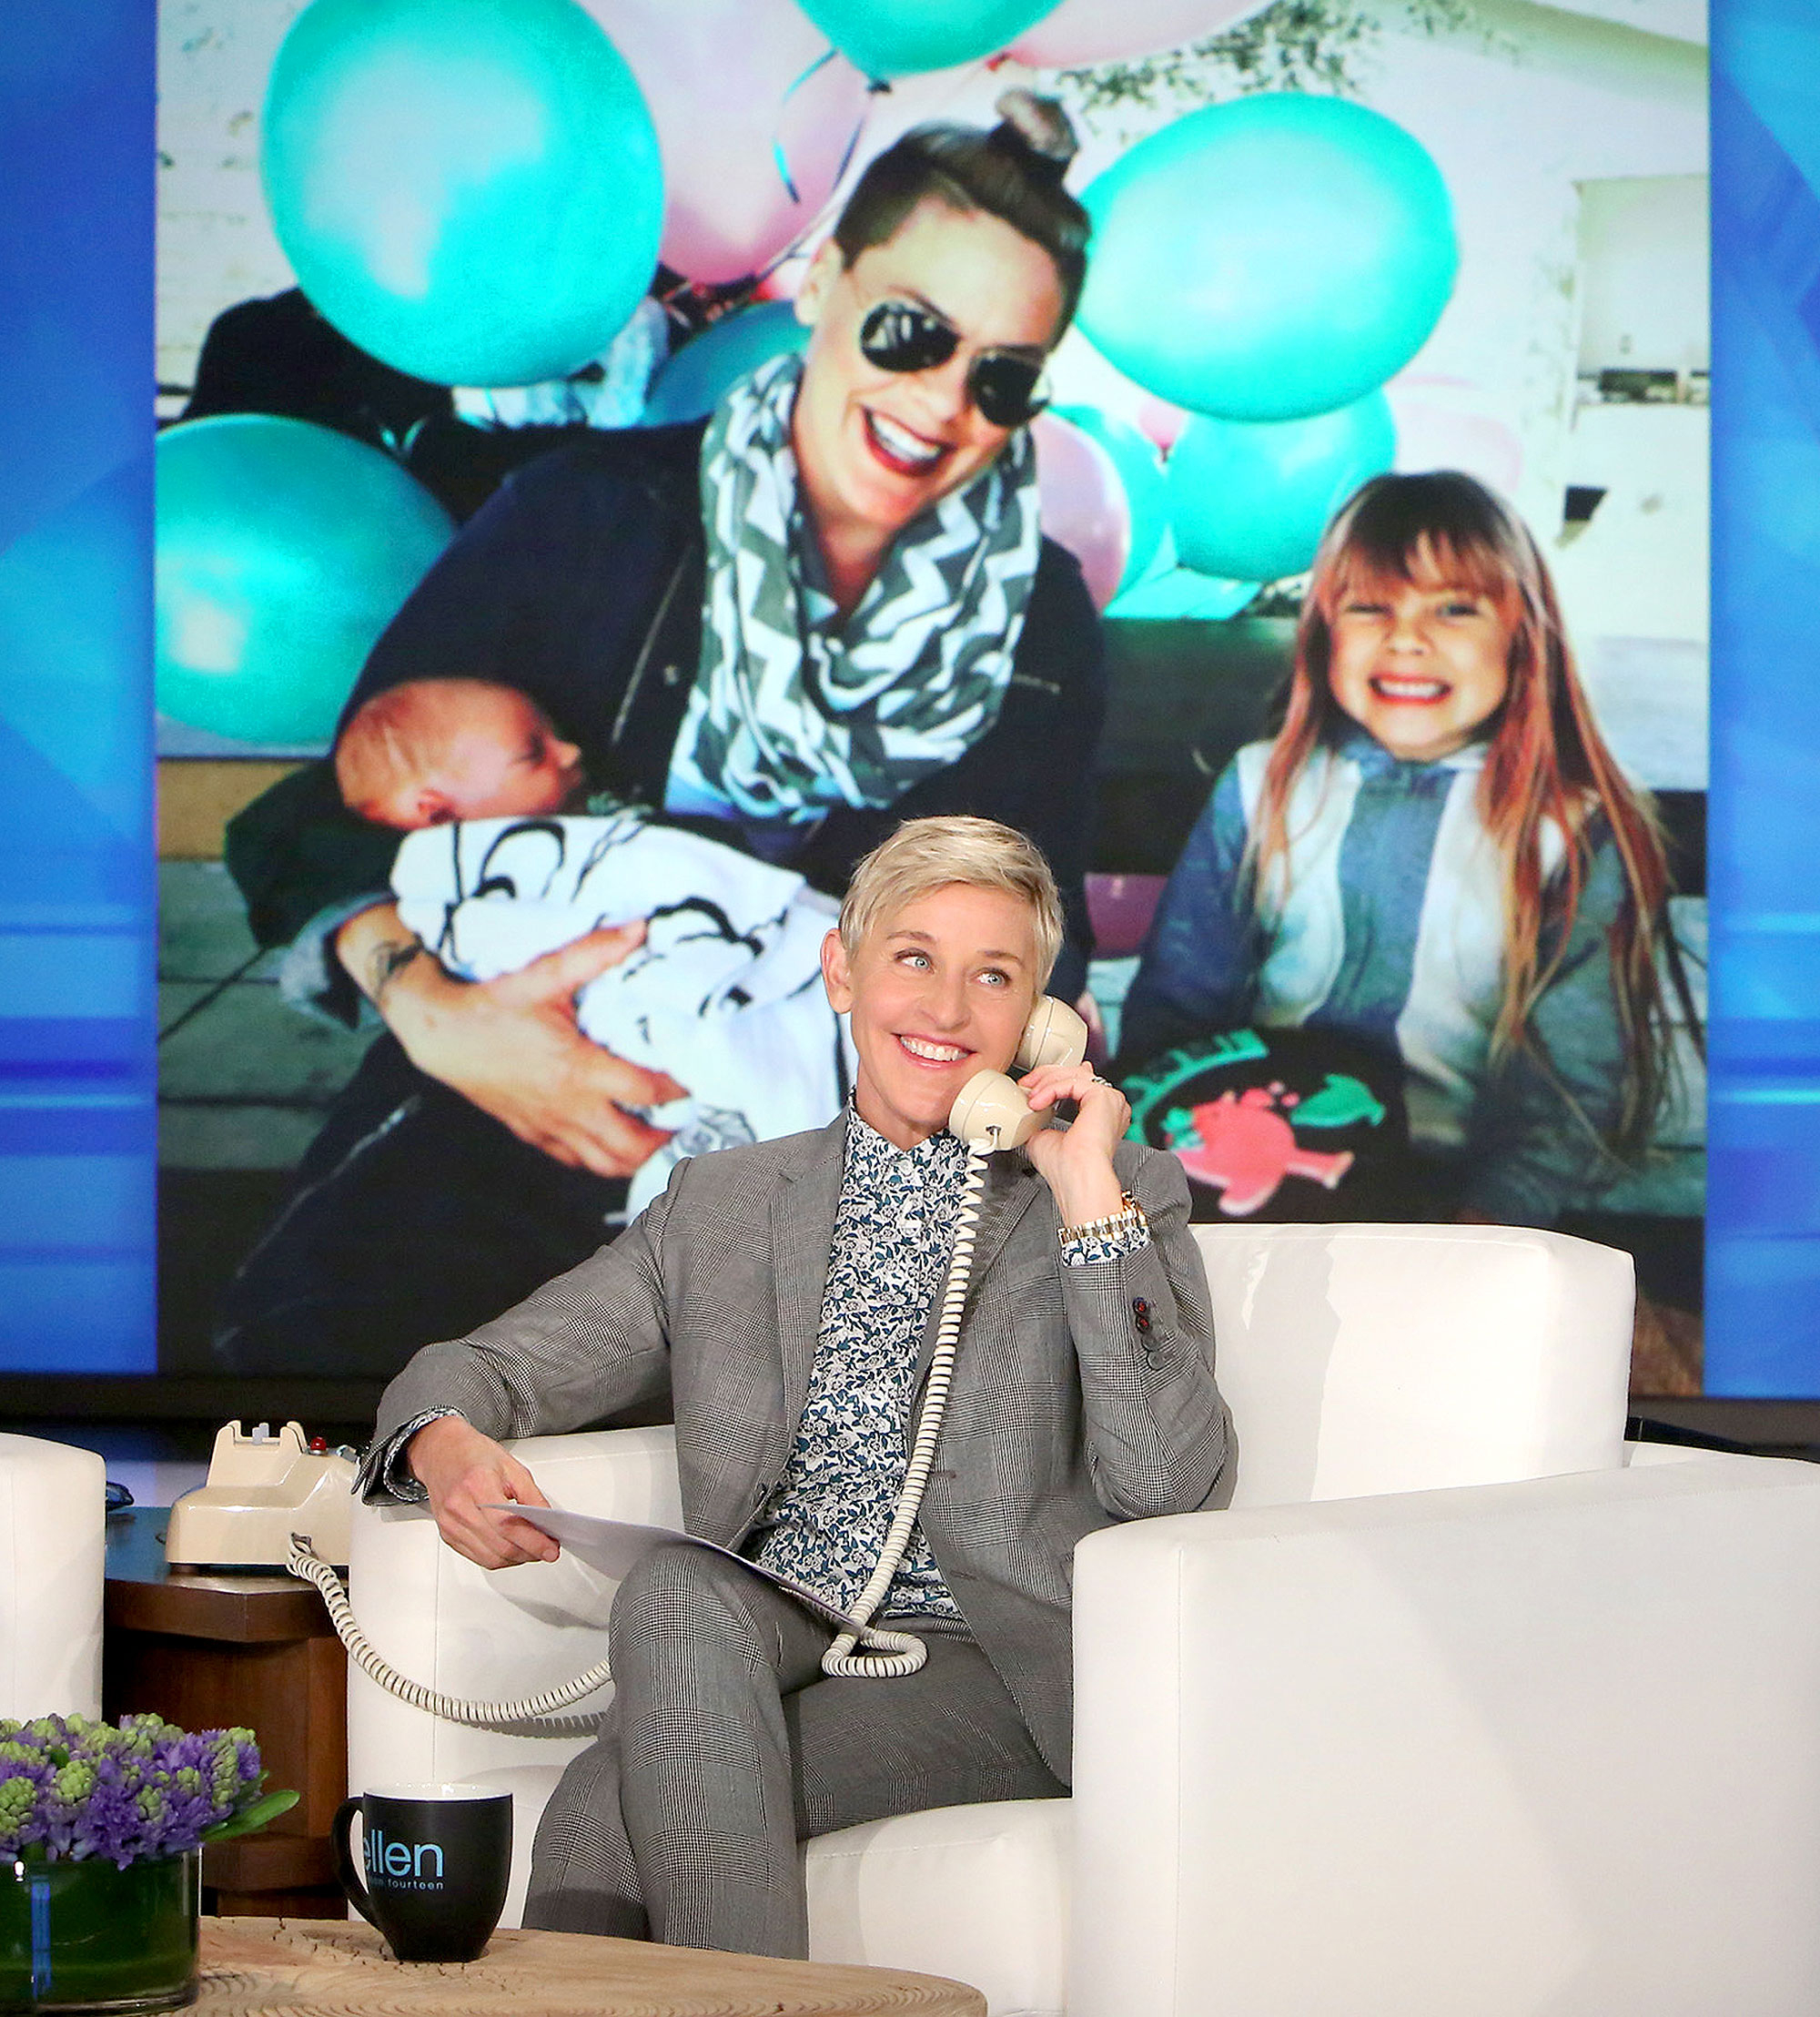 In Pink's first interview since giving birth to her newborn son, Jameson, Ellen chats with her about the baby and how she threw a 'Big Sister Party' for her daughter, Willow, to celebrate her brother's arrival.